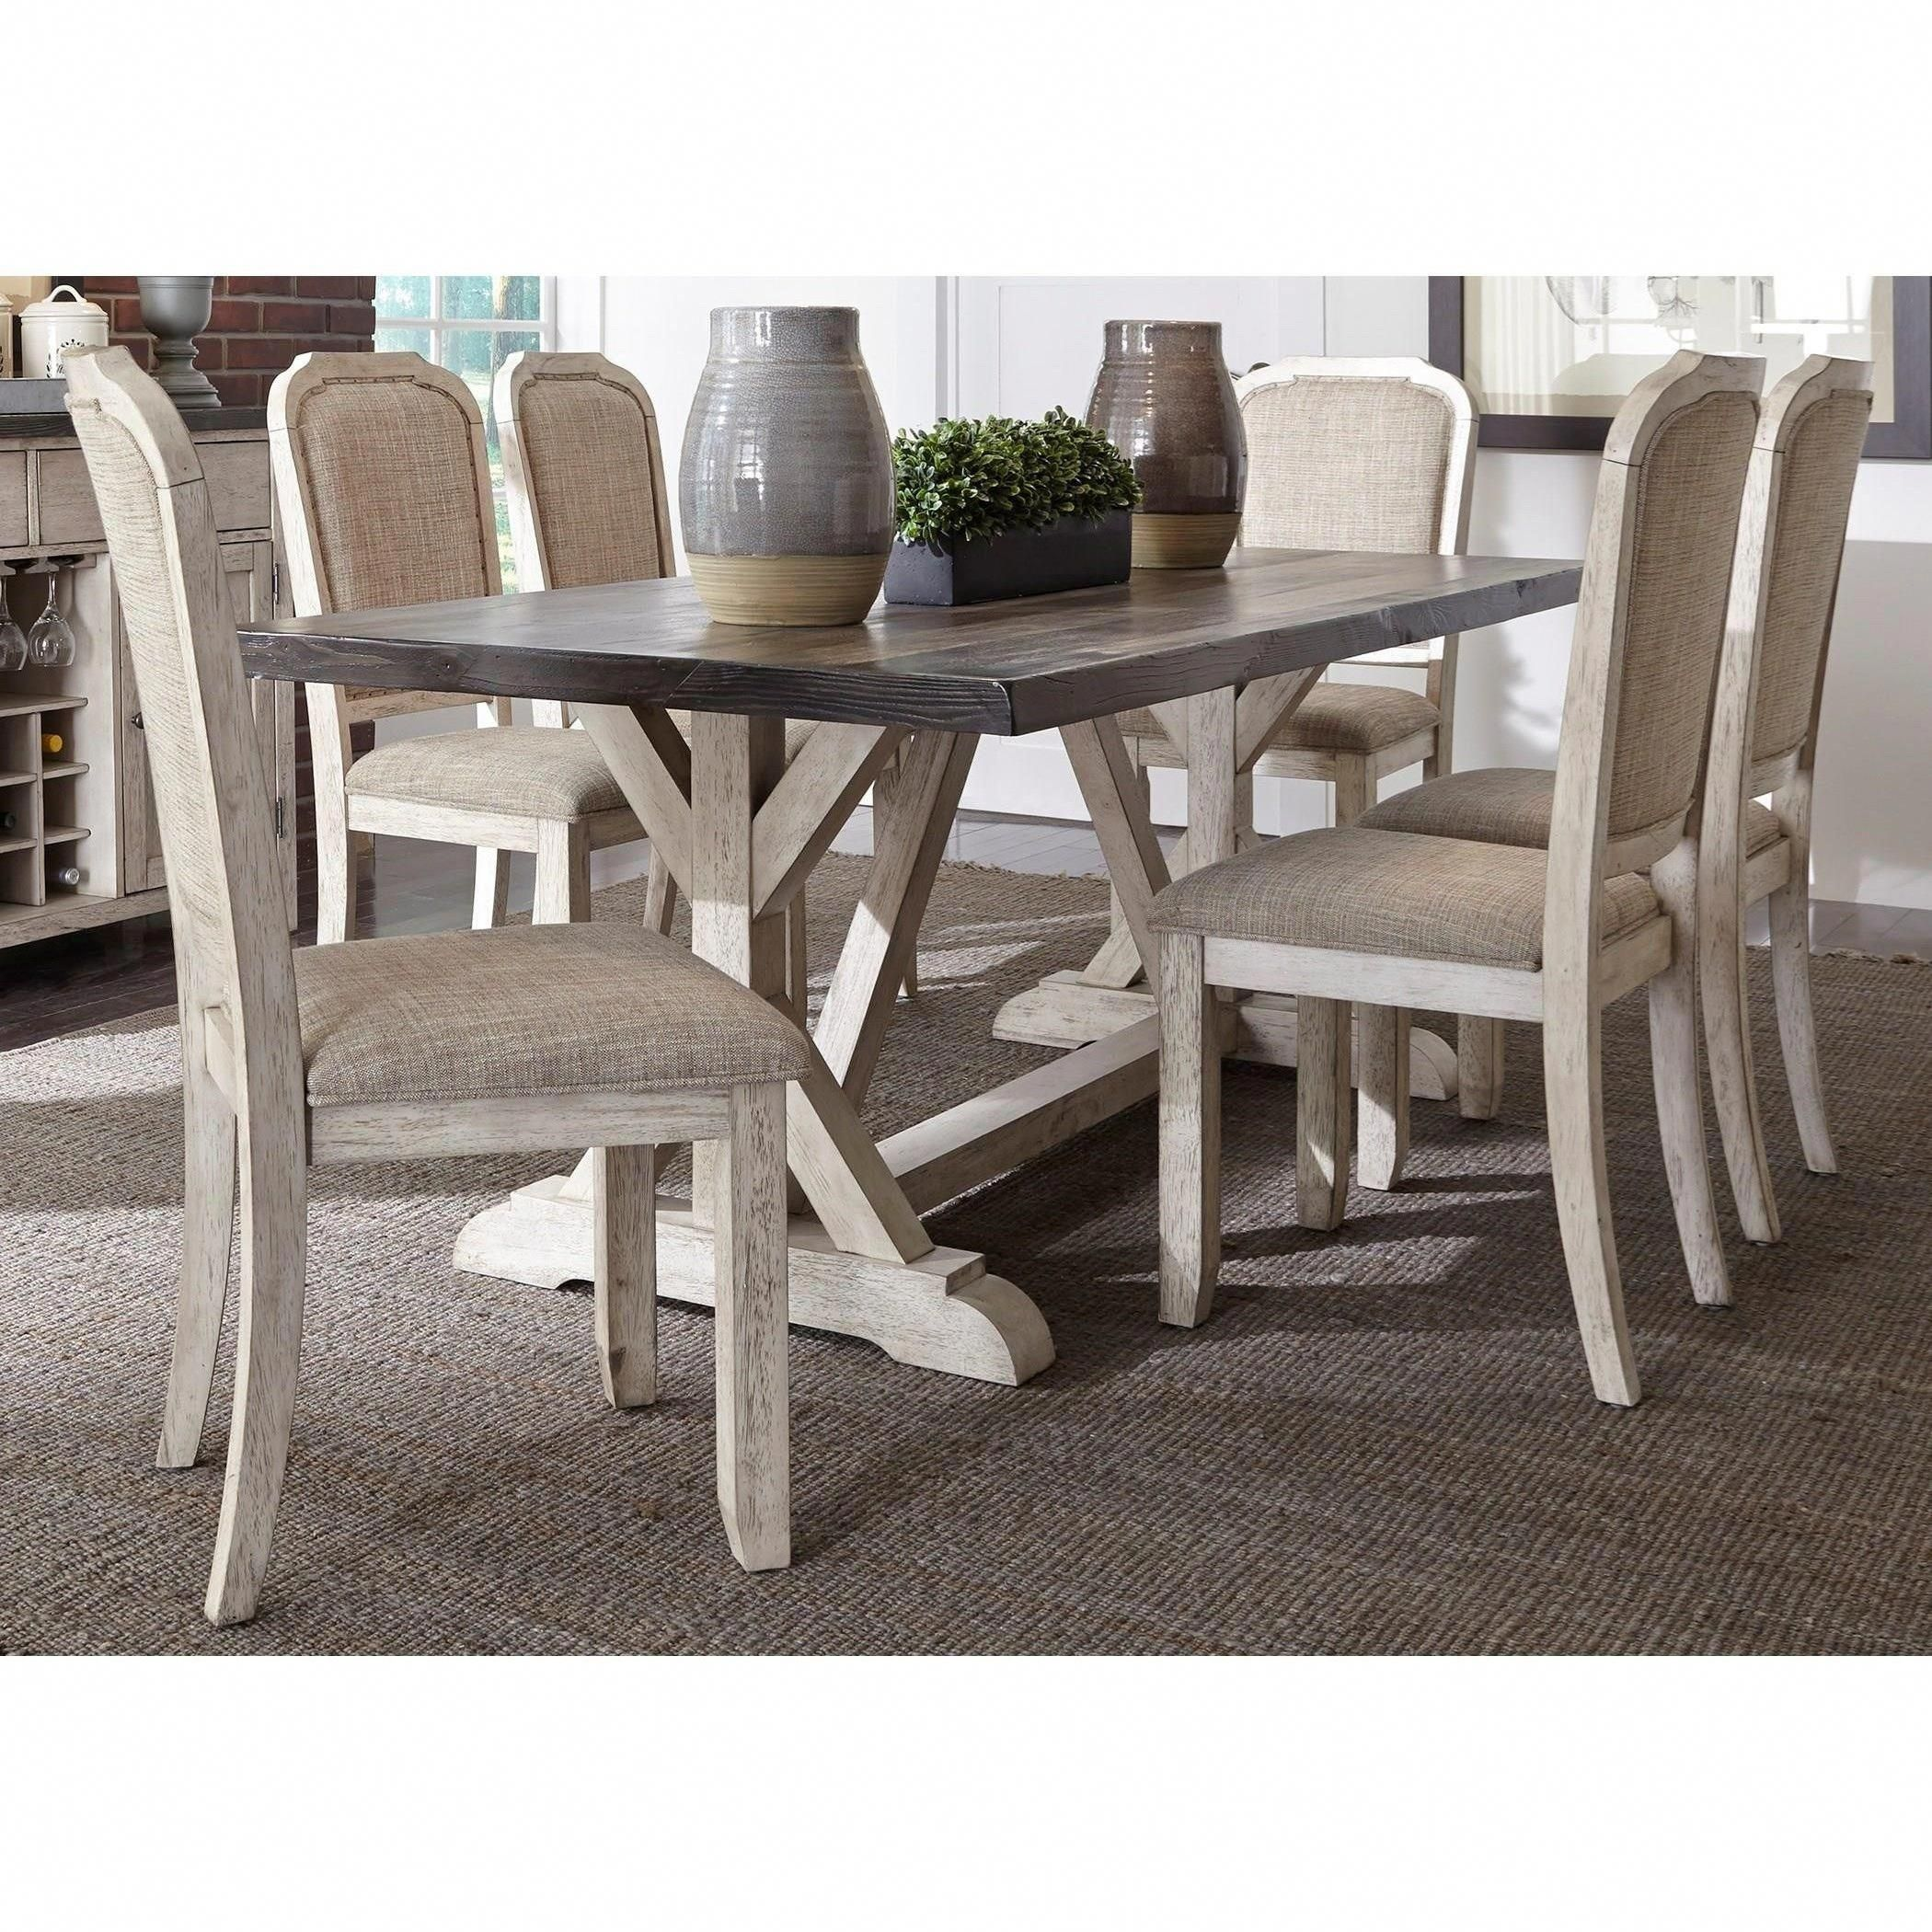 Willowrun 7 Piece Trestle Table Set By Liberty Furniture At Great